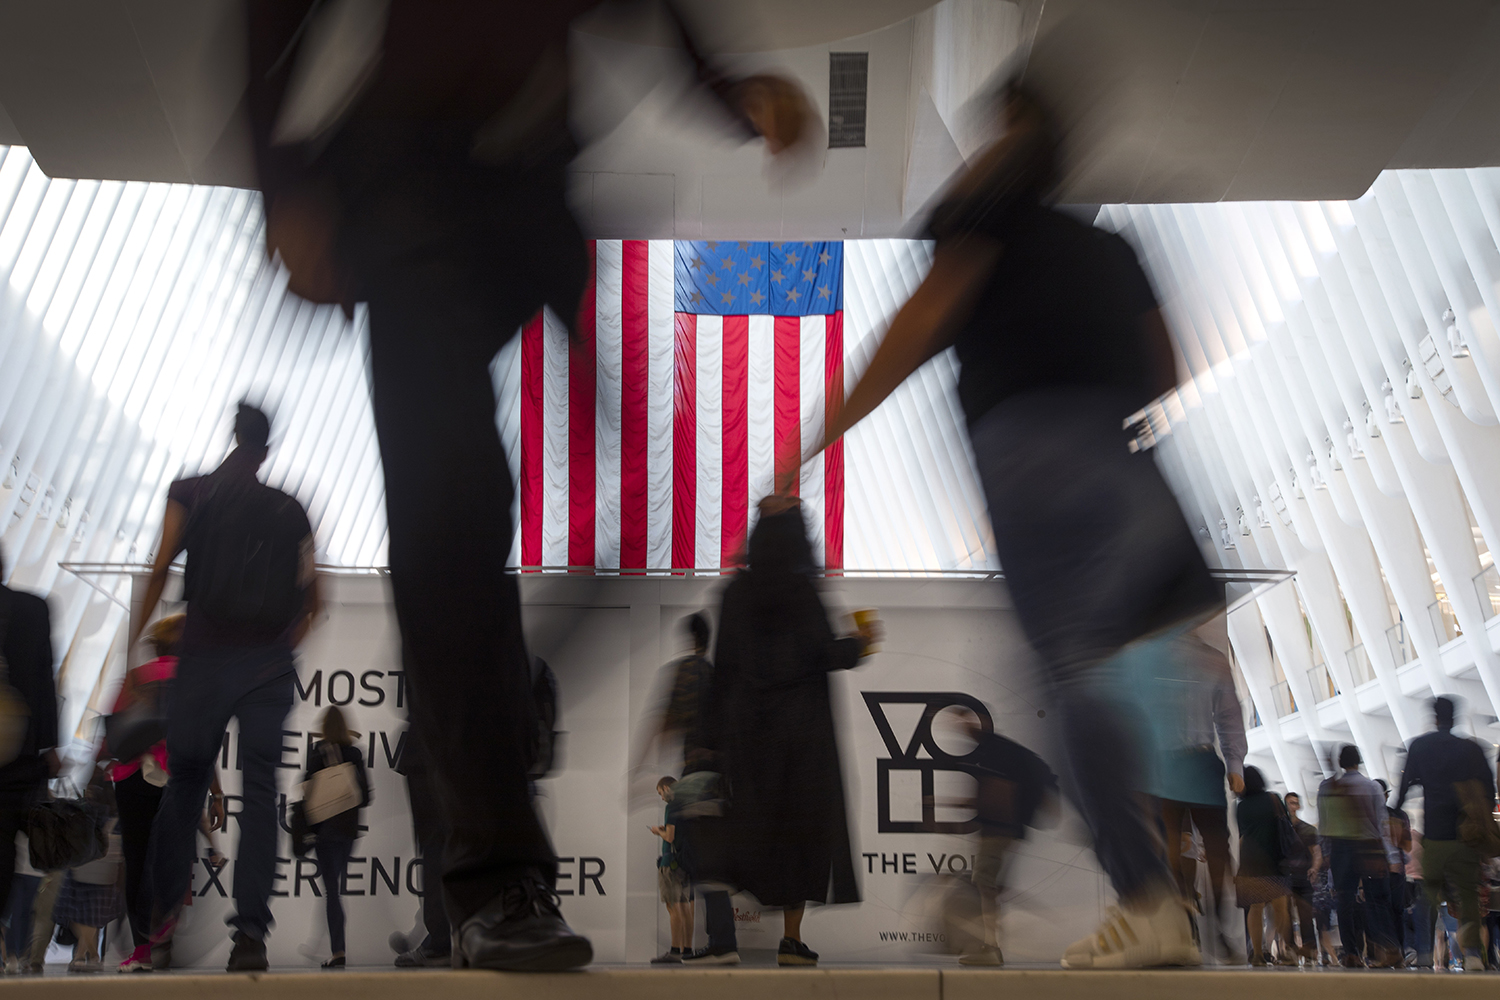 People walk past an American flag at the start of a work day, at the Oculus, part of the World Trade Center transportation hub in New York, Wednesday, Sept. 11, 2019, on the 18th anniversary of 9/11 terrorist attacks. (Wong Maye-E/AP)